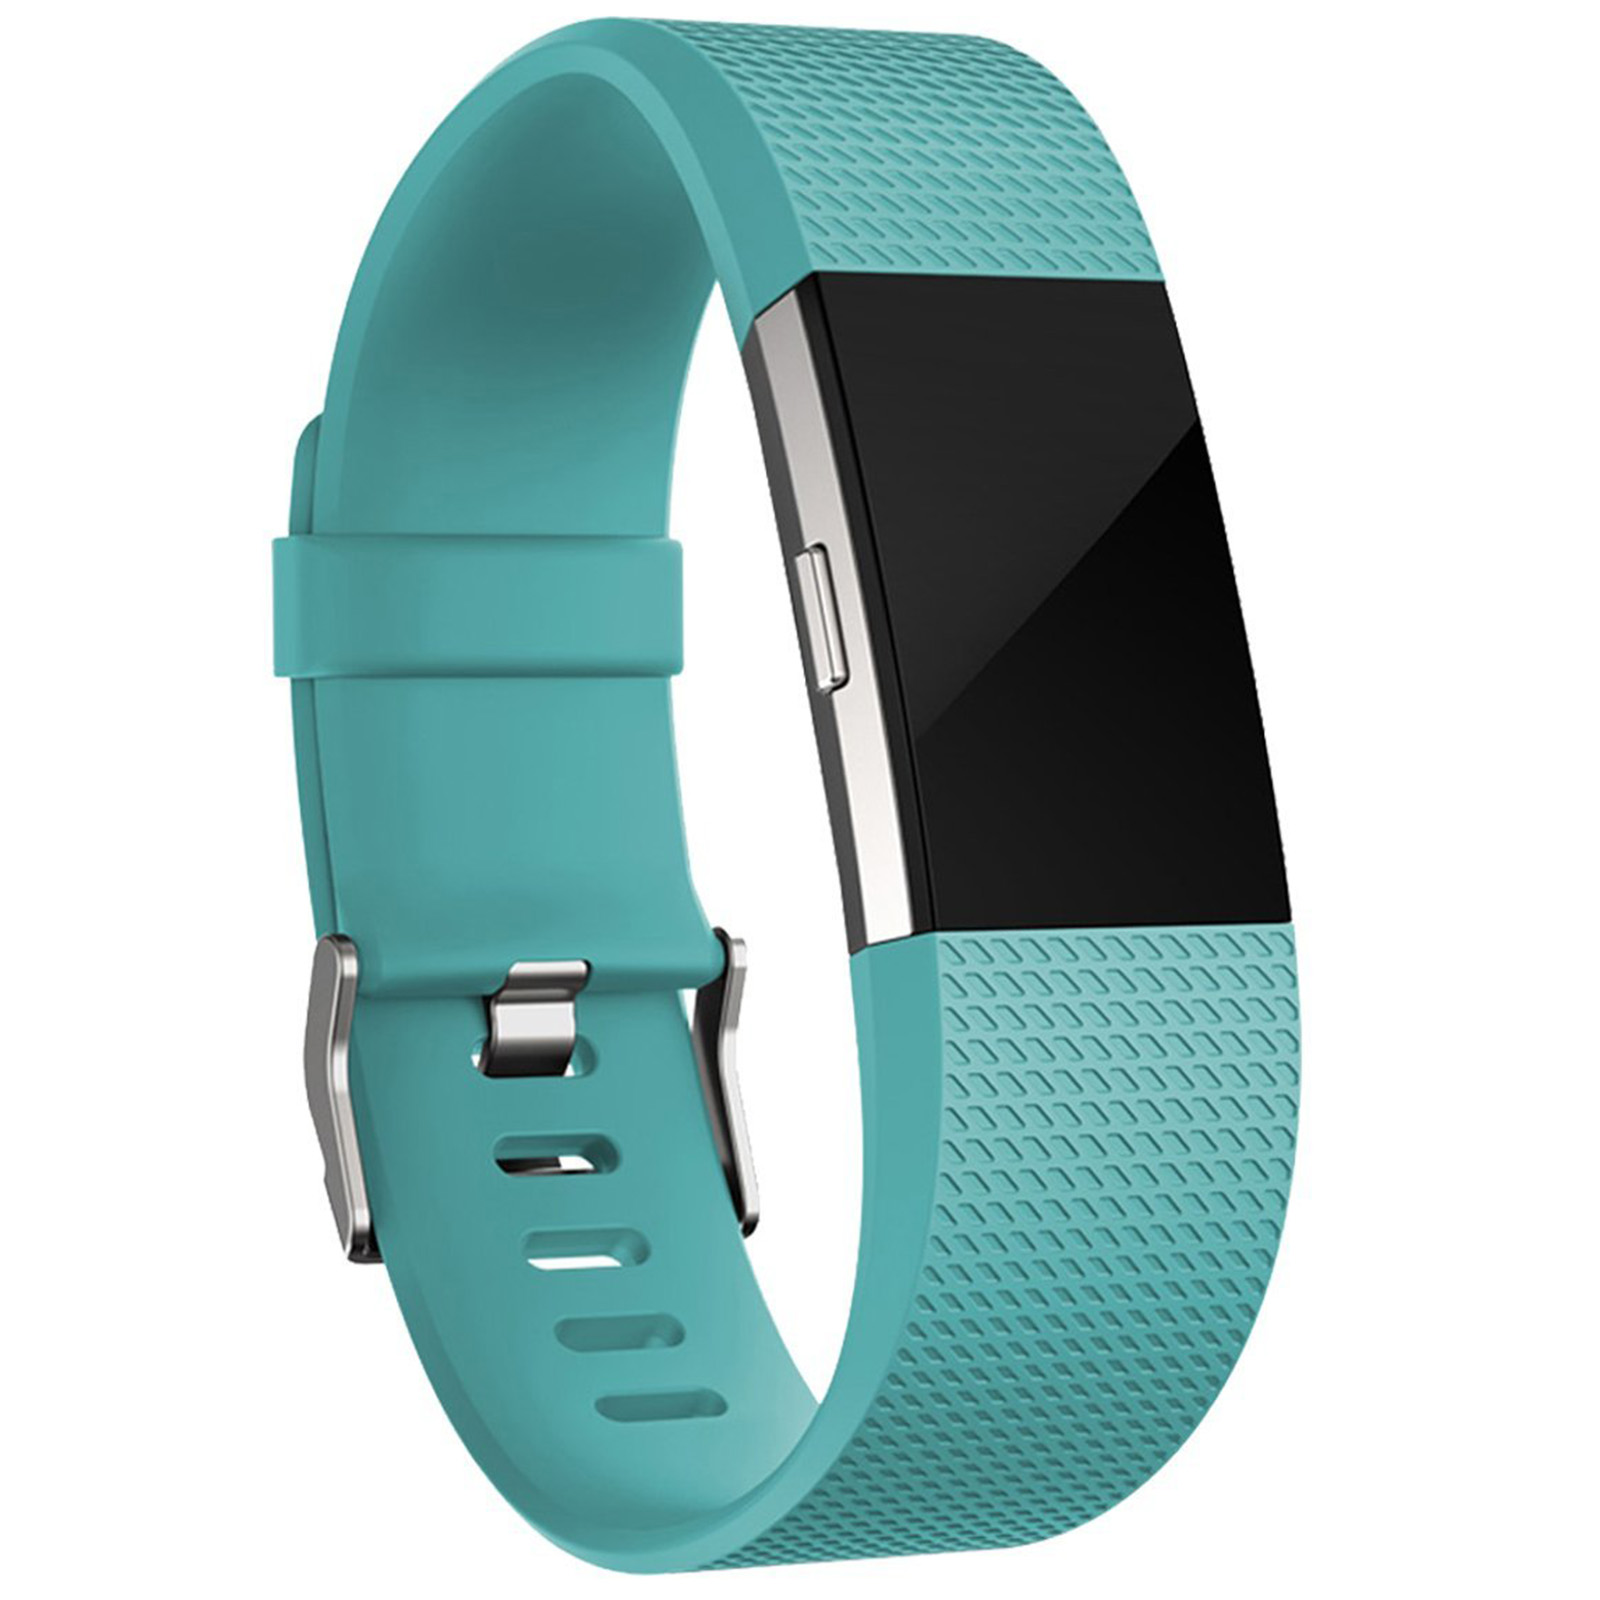 Fitbit Charge 2 Band, Adjustable Replacement Sport Strap Wristband for Fitbit Charge 2 by